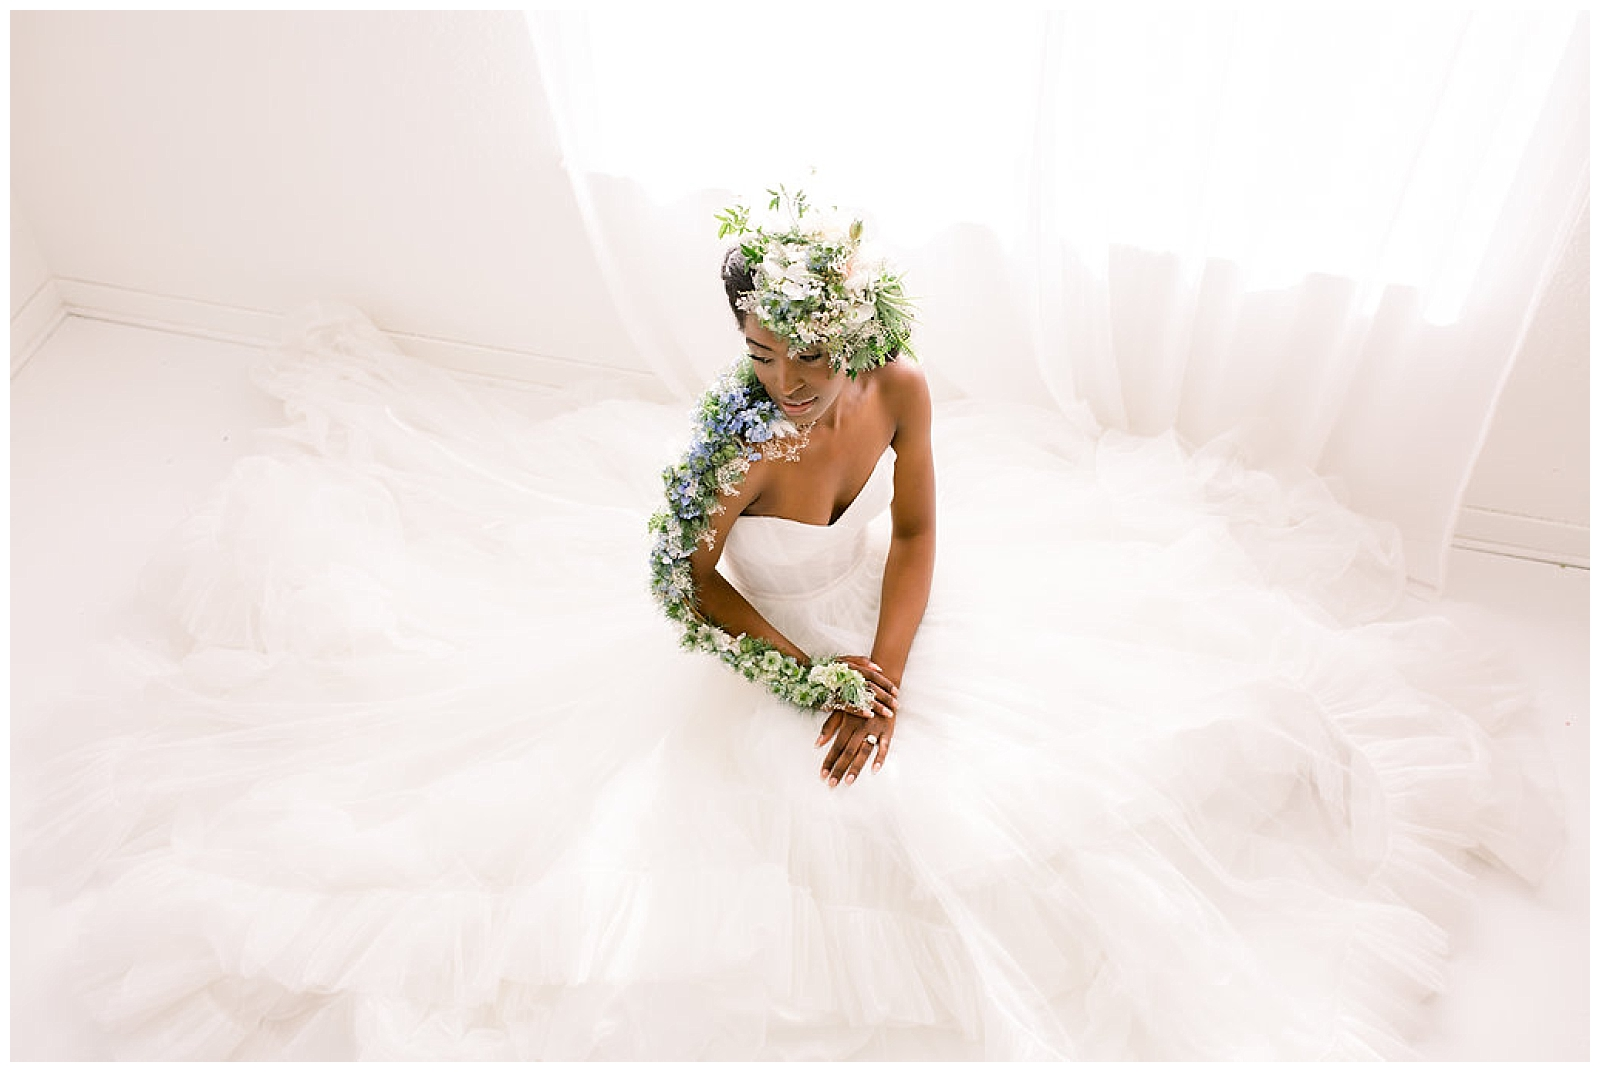 Living-Accessories-styled-shoot-de-joy-photography-epiphany-boutique-ballgown.jpg